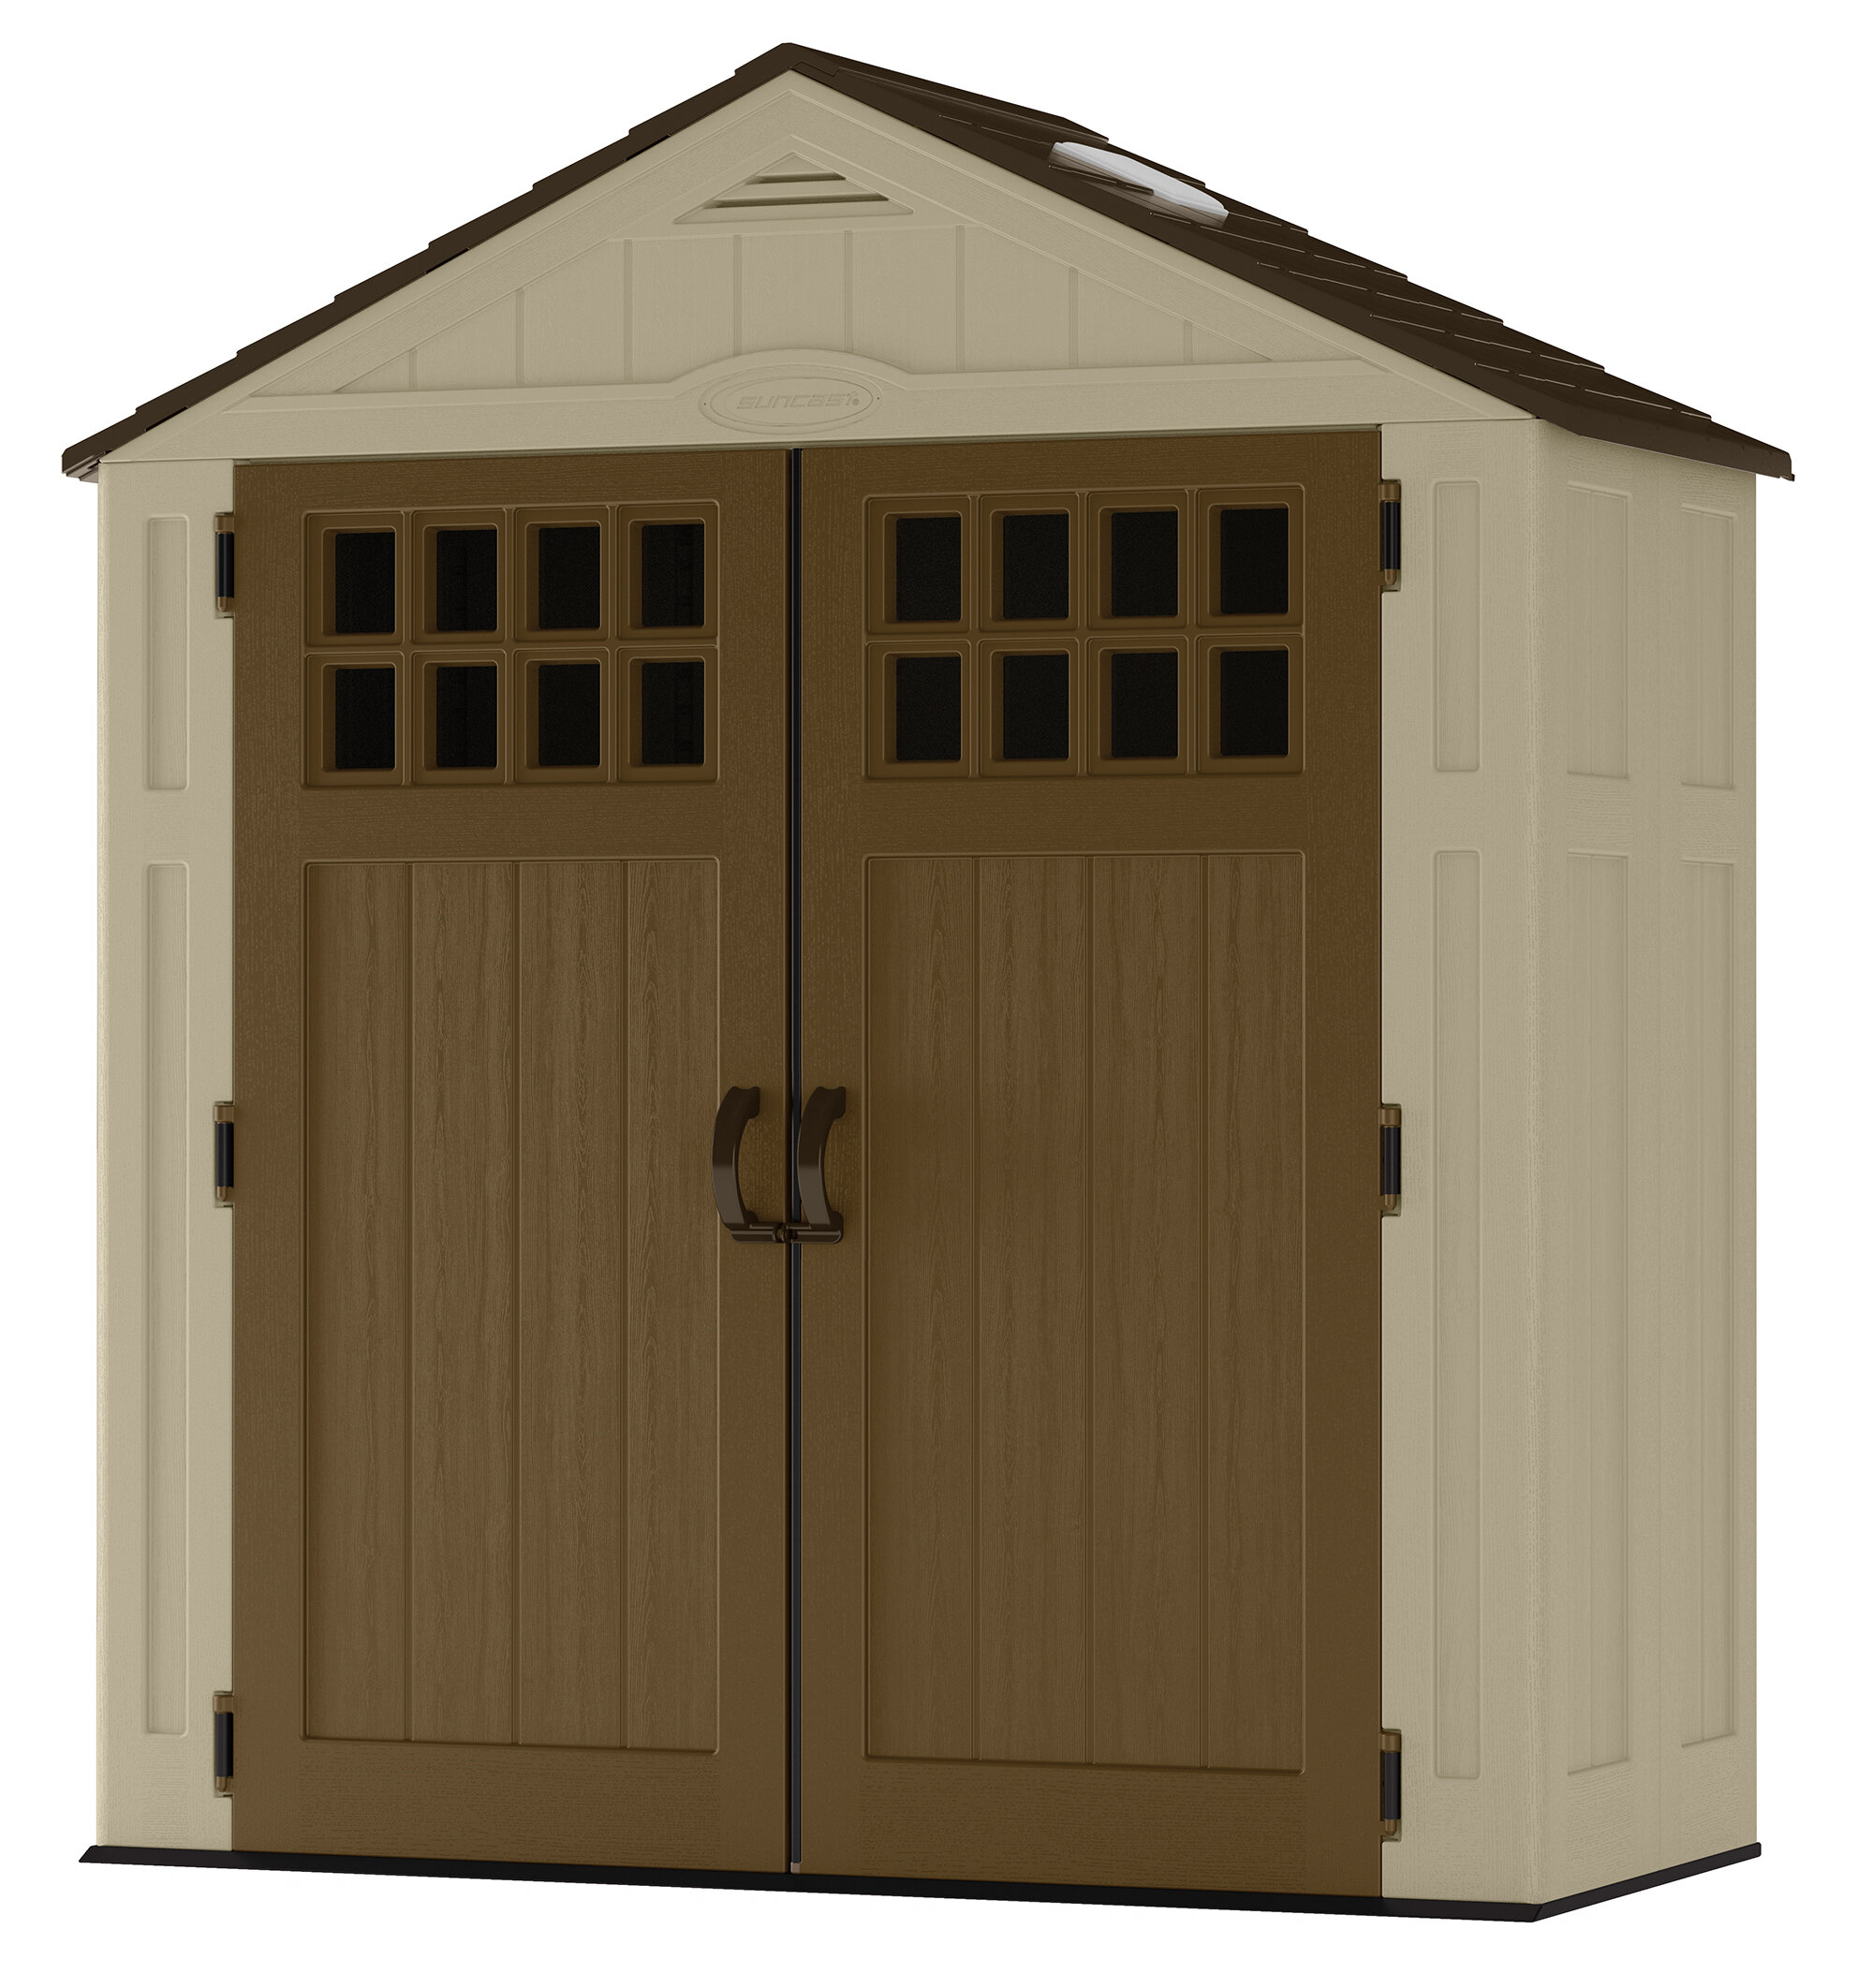 sheds houses portable gallery ush easy storage photo utility buildings tiny shed